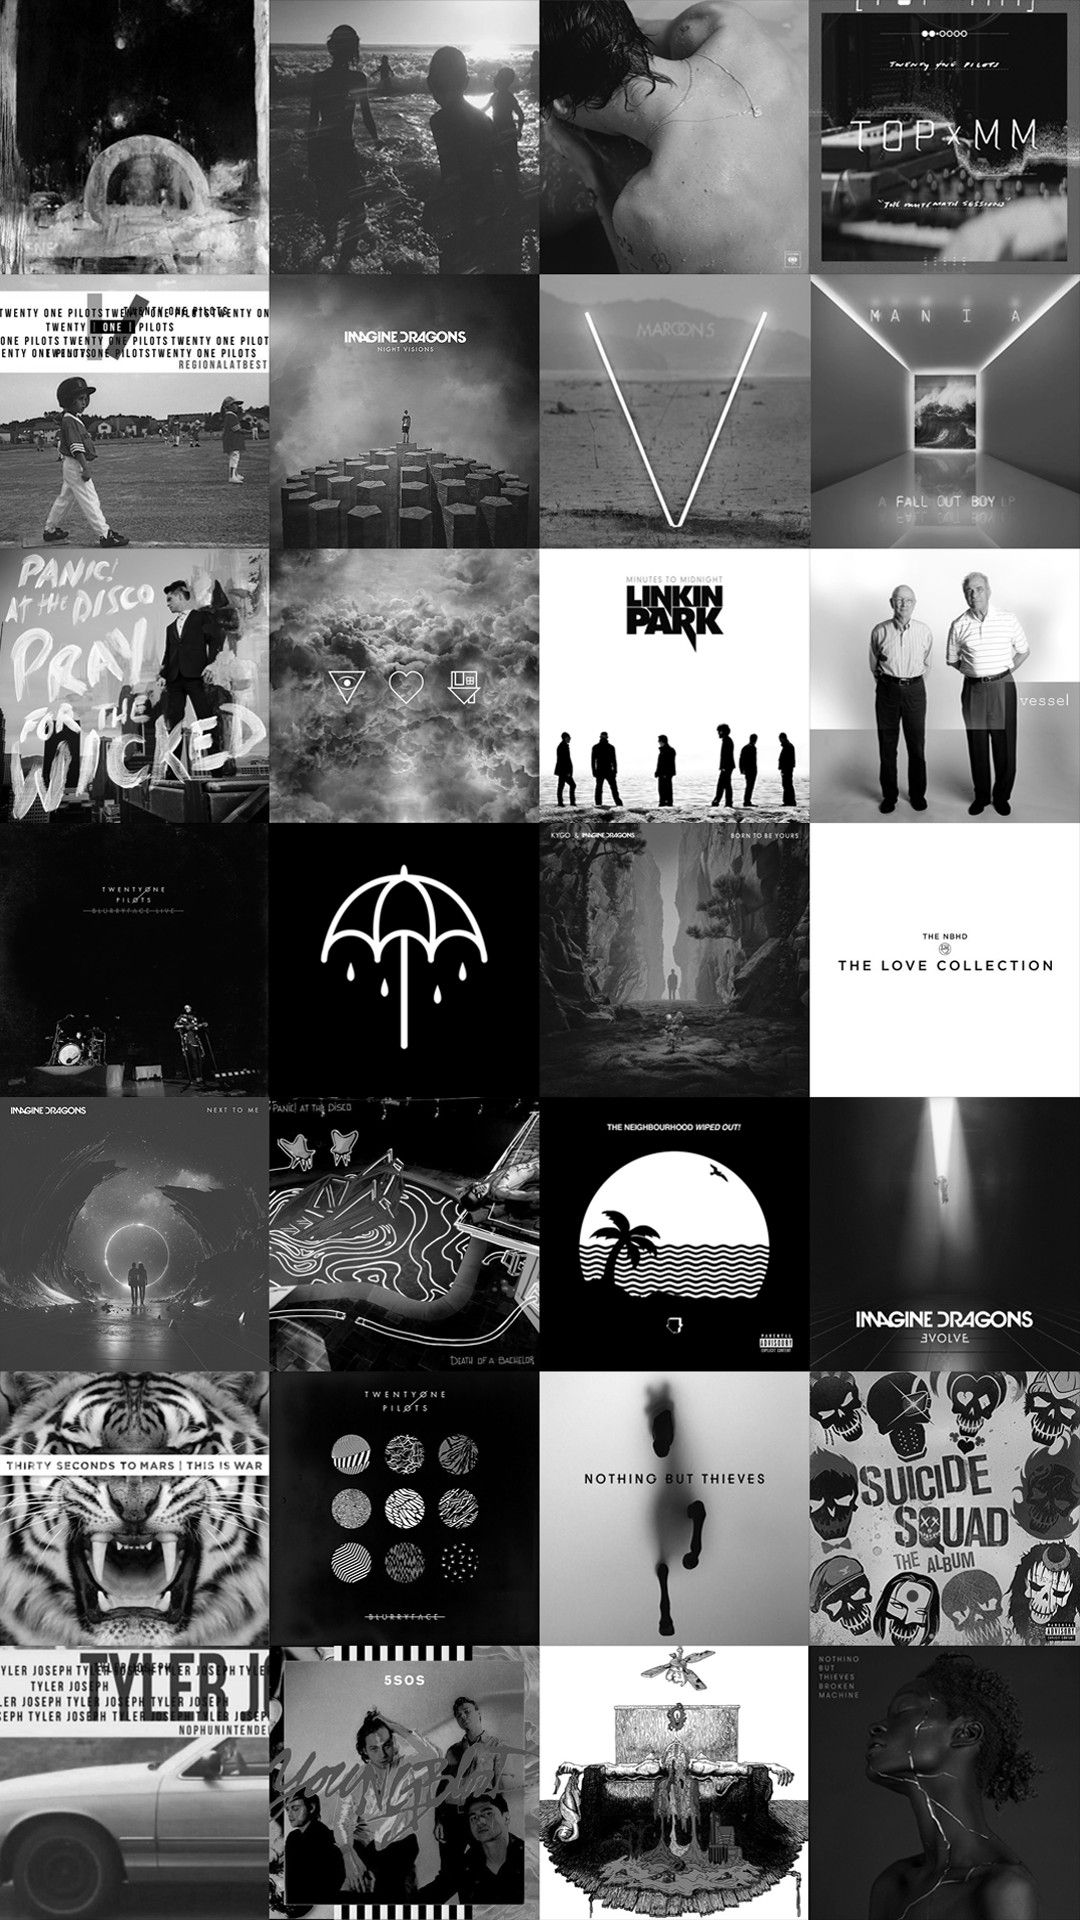 f70ad2d66789b Twenty One Pilots Panic at the Disco Imagine Dragons Linkin Park The  Neighbourhood Nothing But Thieves Maroon 5 Harry Styles 30 seconds to mars  5 seconds od ...